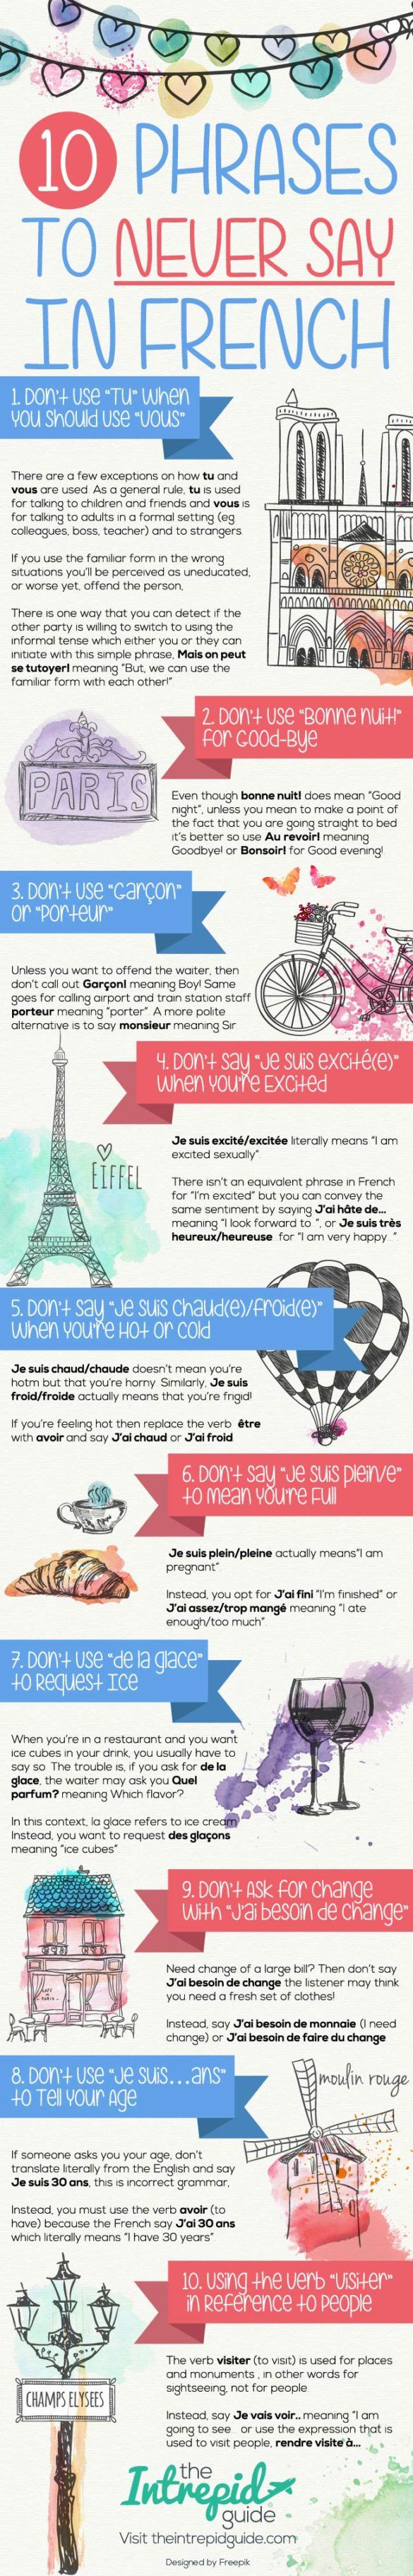 Phrases to Never Say in French